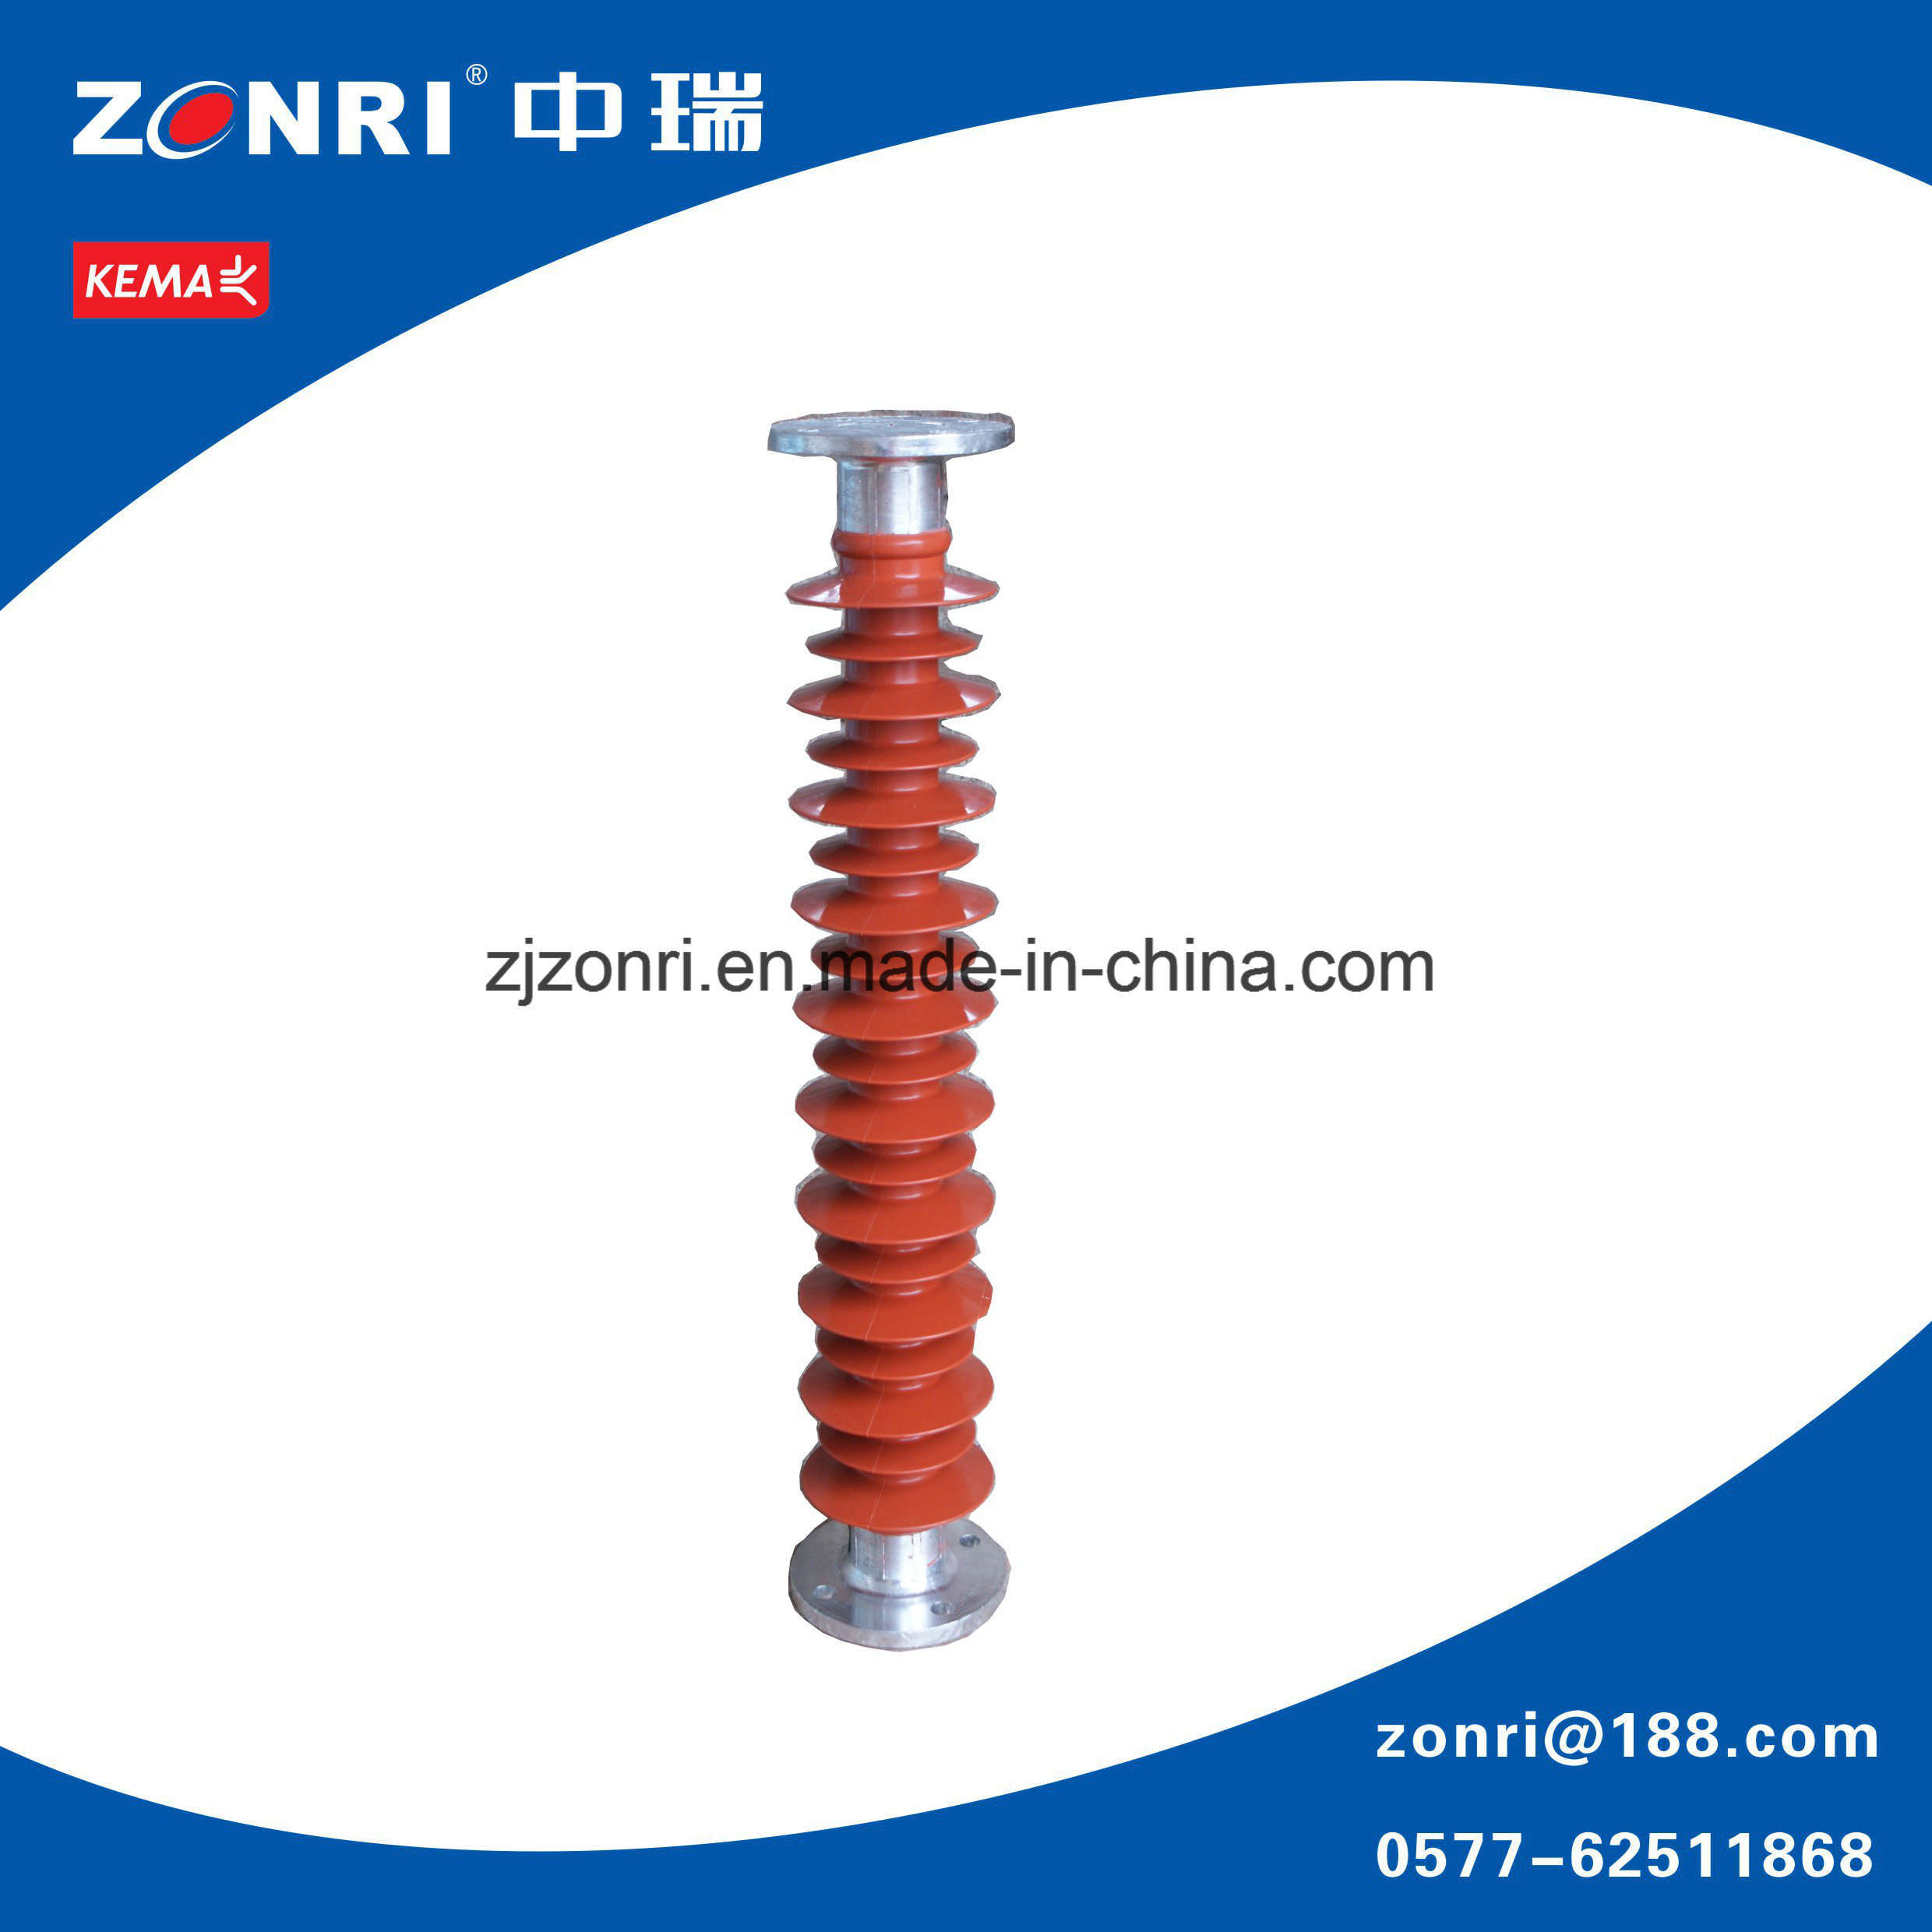 Composite Post Insulator (FZSW-35/8) 35kv 8kn